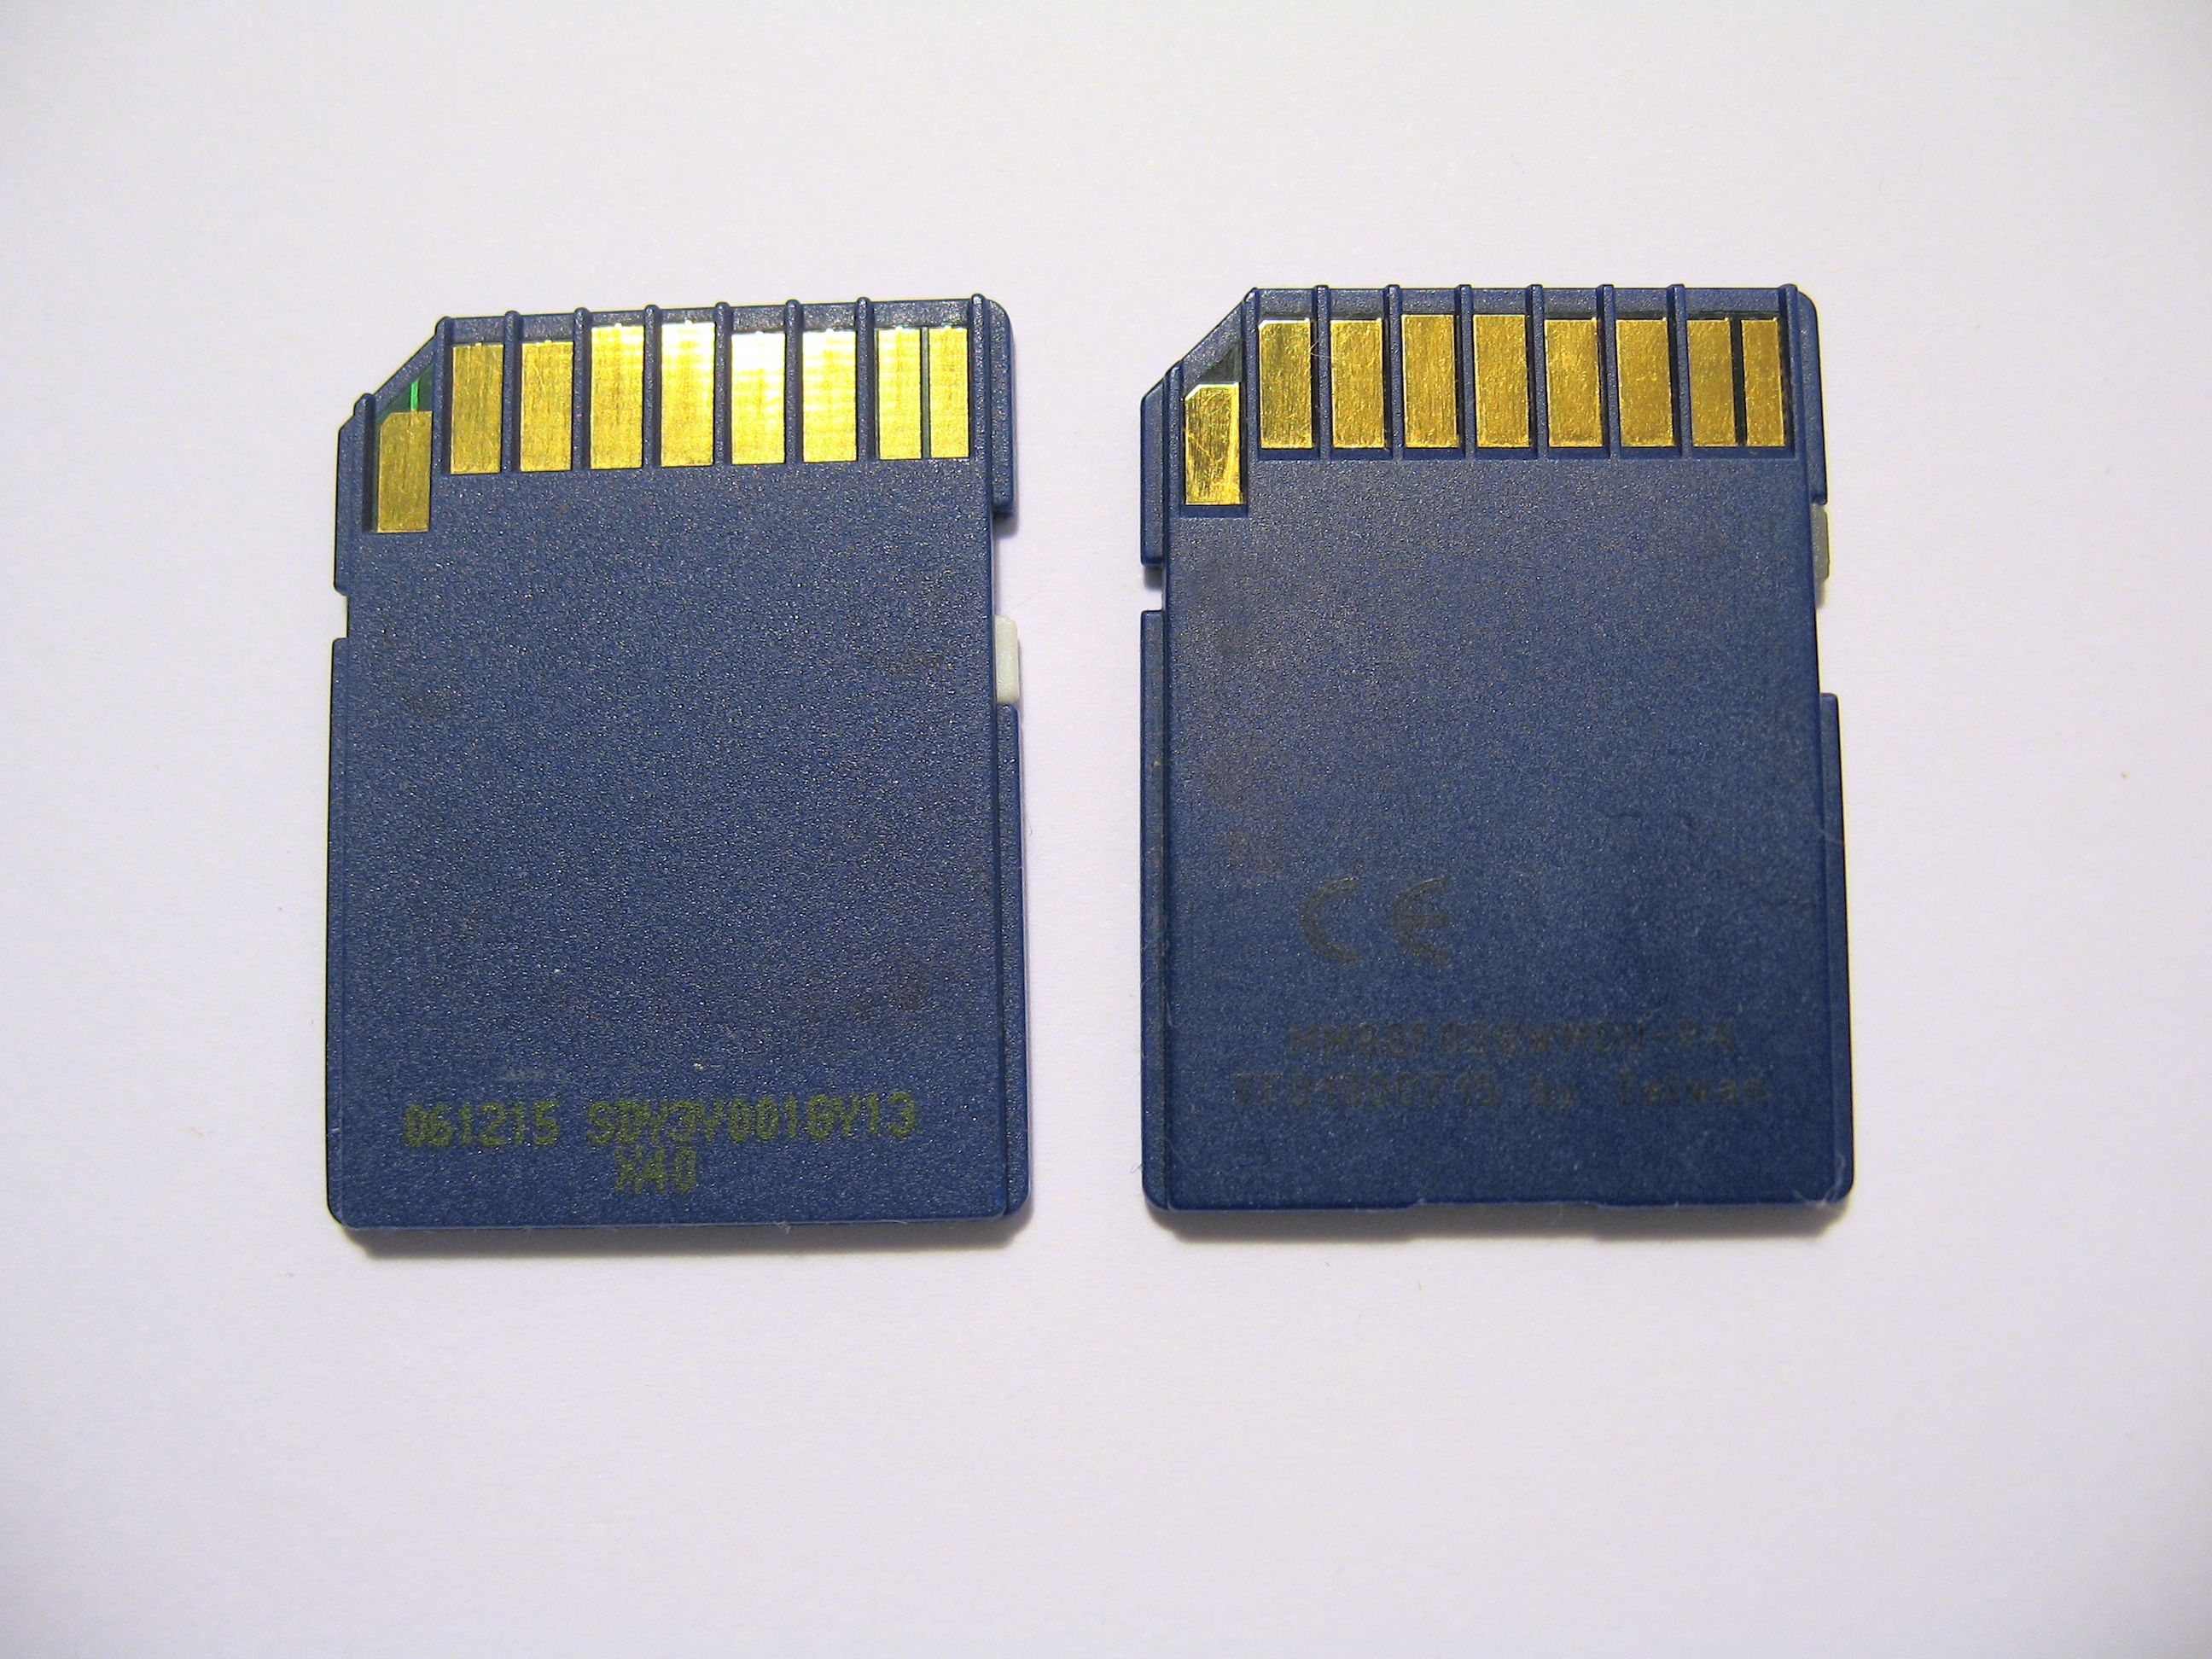 File:Crucial SD Cards 2007 1GB and 2GB (rear) jpg - Wikimedia Commons